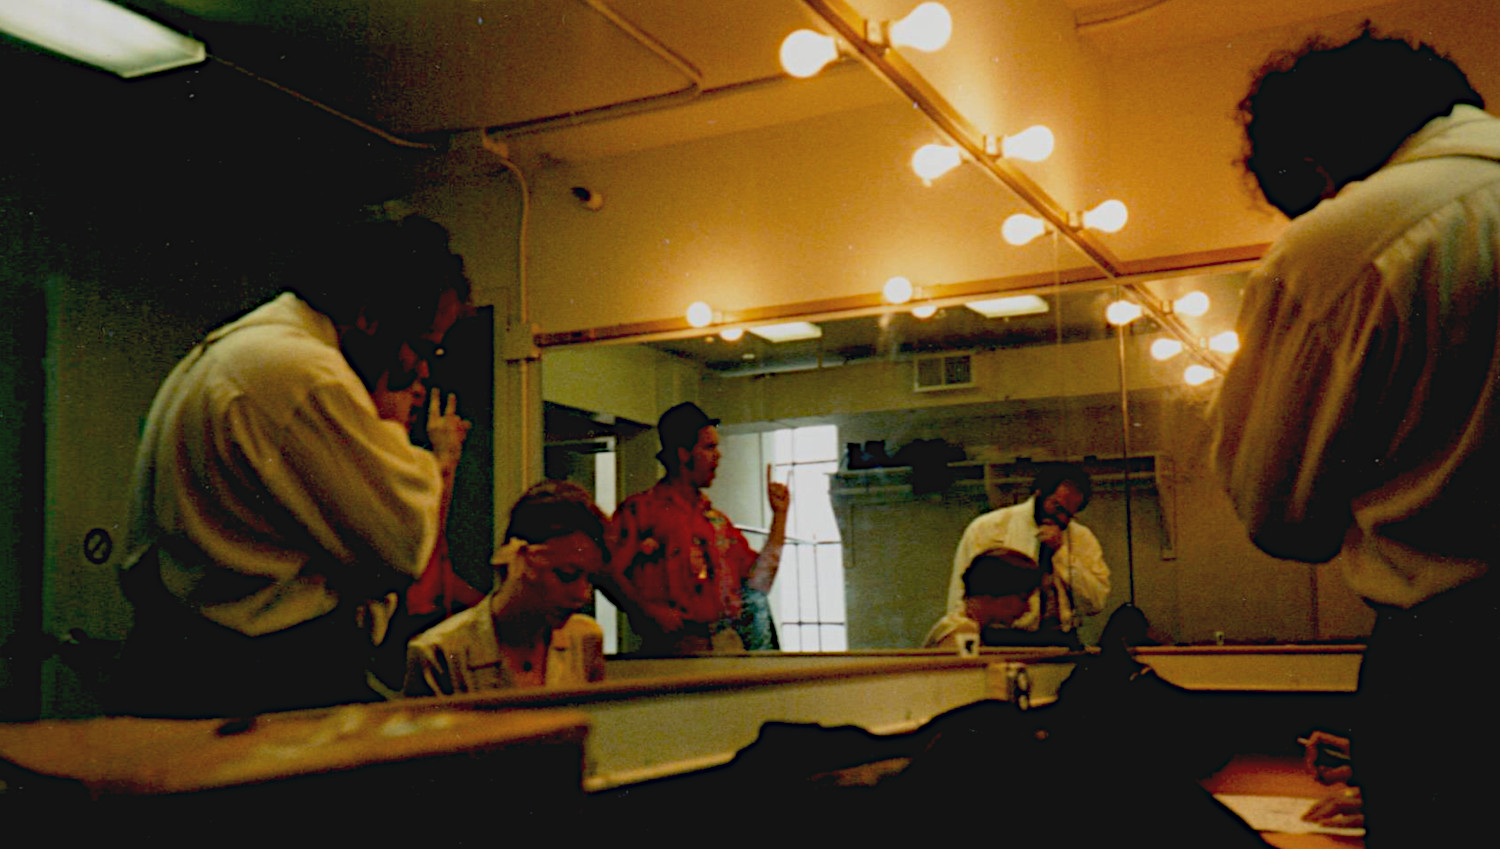 CC_SF_WCL_Backstage 1.jpg